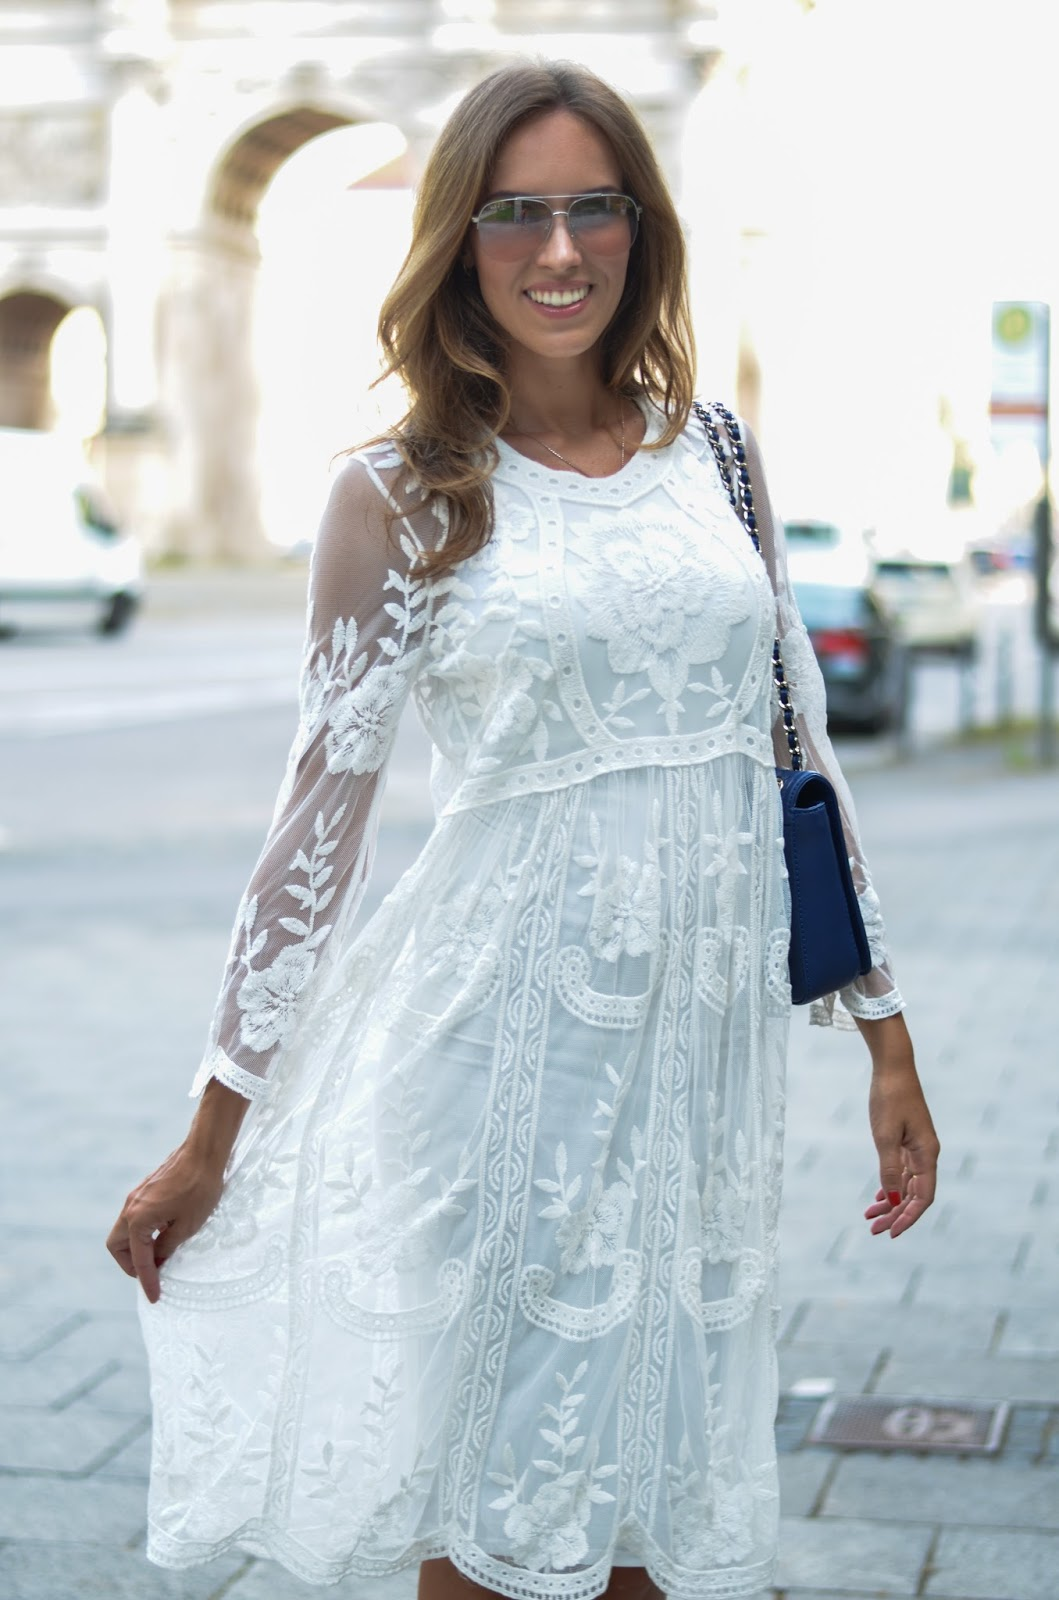 kristjaana mere german fashion blogger white dress outfit